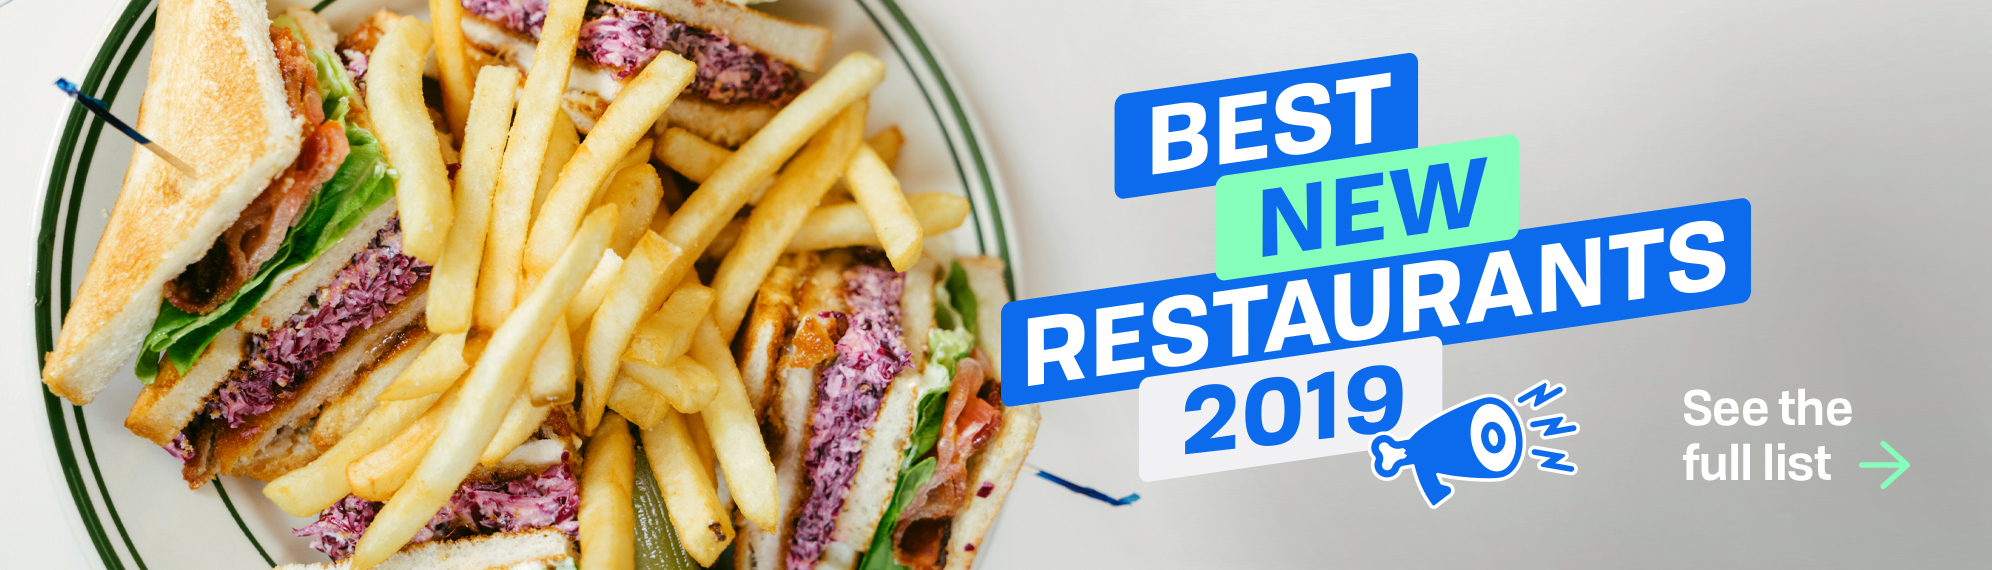 See the full list of NYC's Best Restaurants Of 2019.